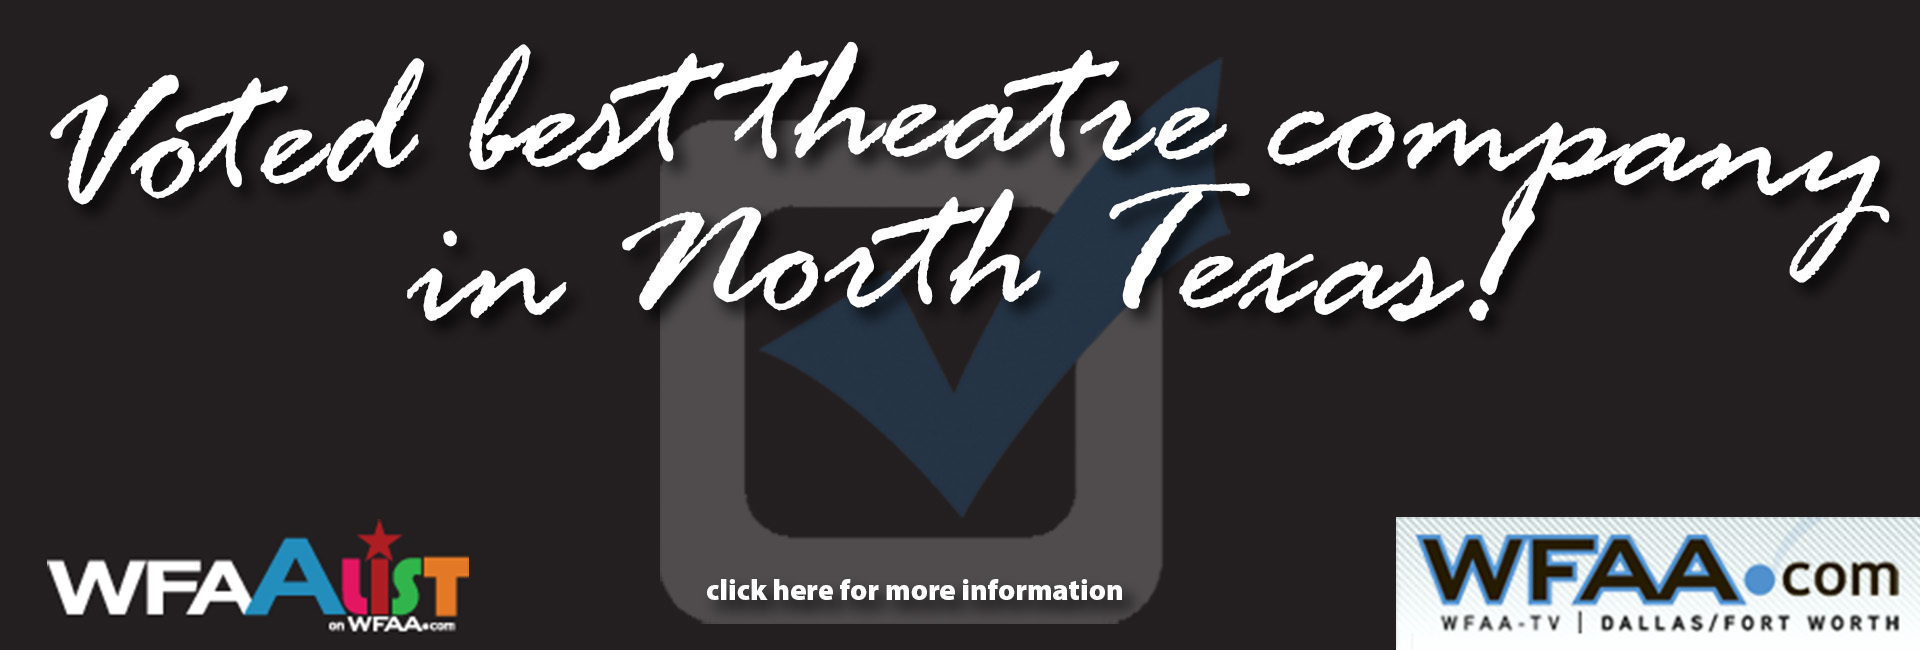 Voted best Theatre in North Texas